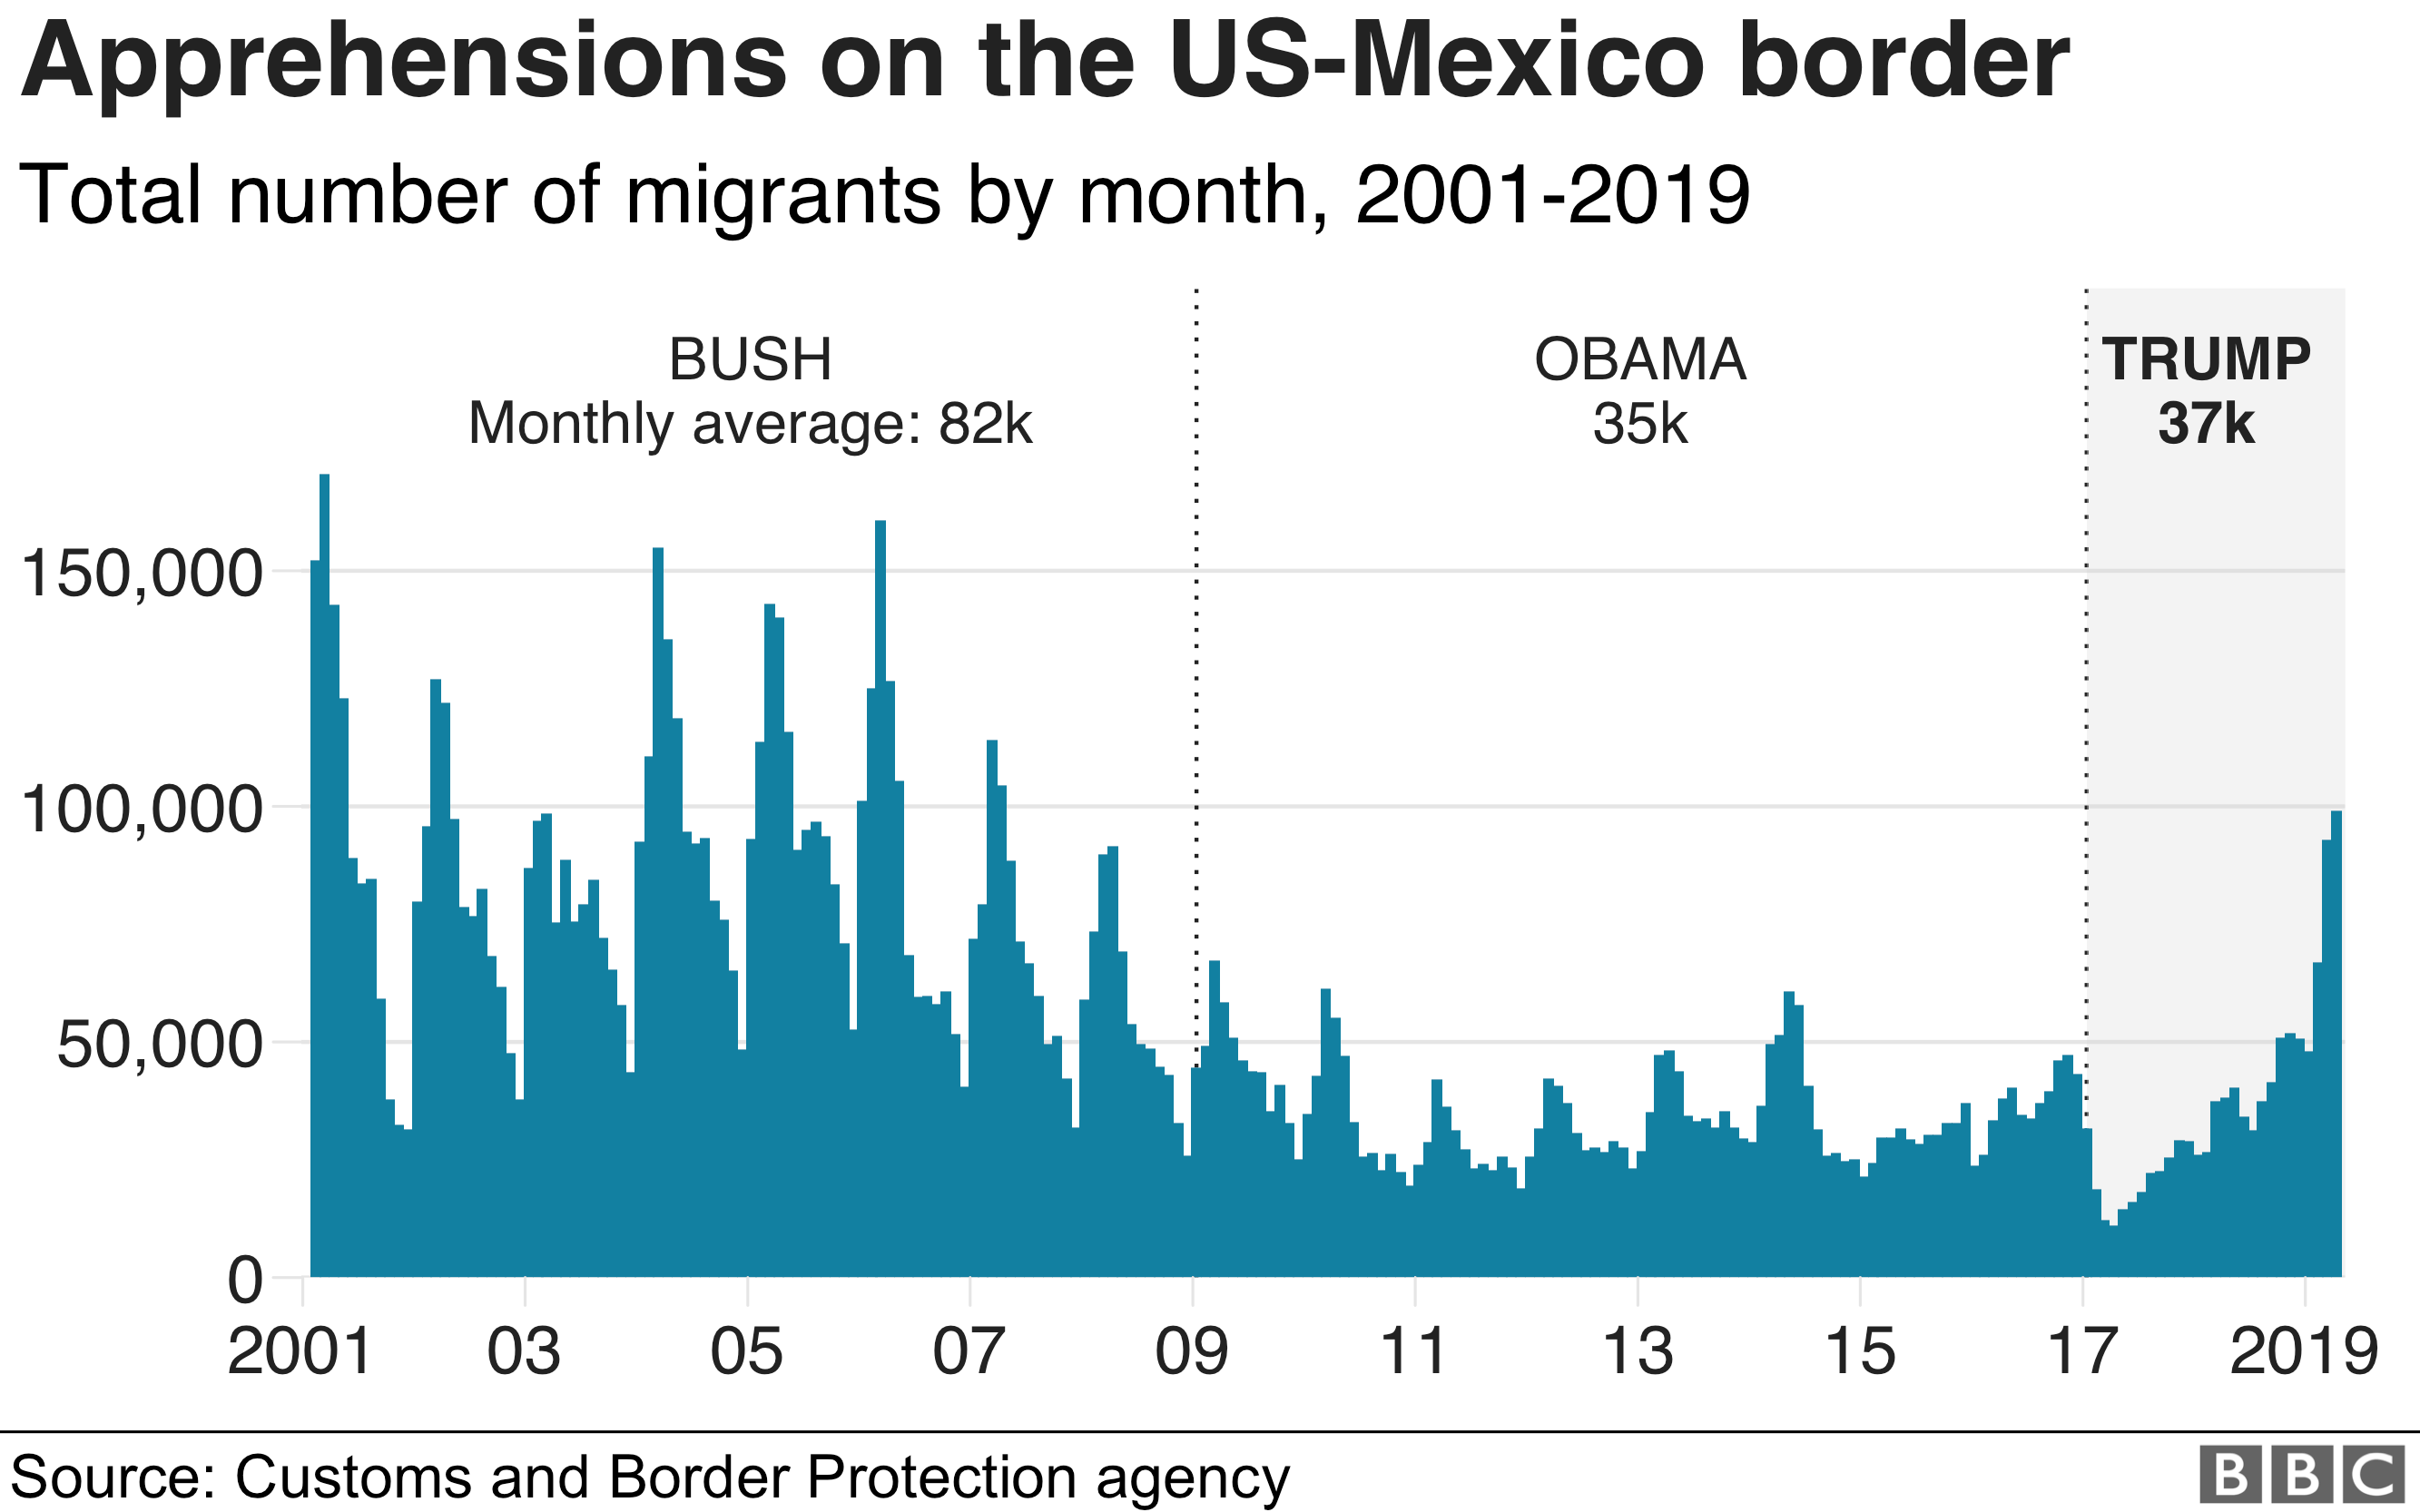 Chart showing the number of apprehensions at the US-Mexico border by US president